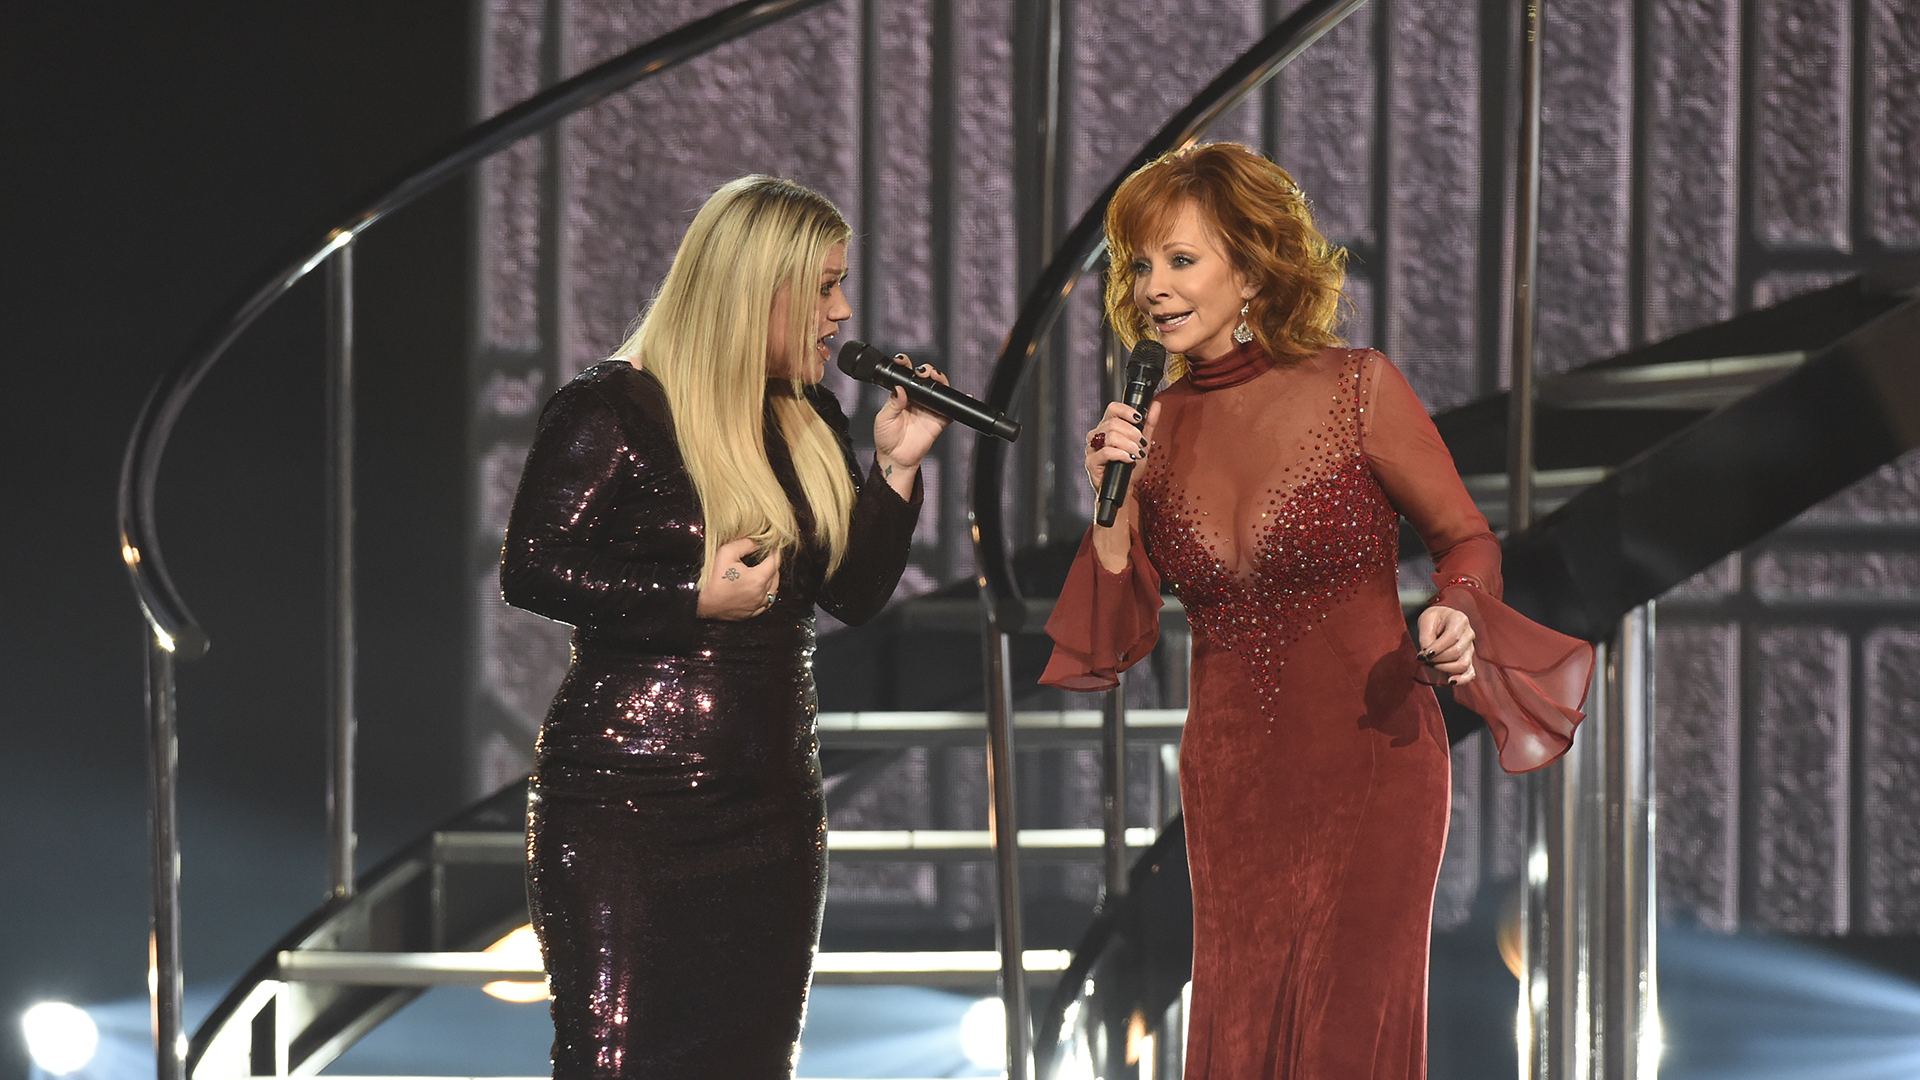 For the ACM Awards' final flashback performance, pop superstar Kelly Clarkson joins Reba McEntire to sing McEntire's 1993 track